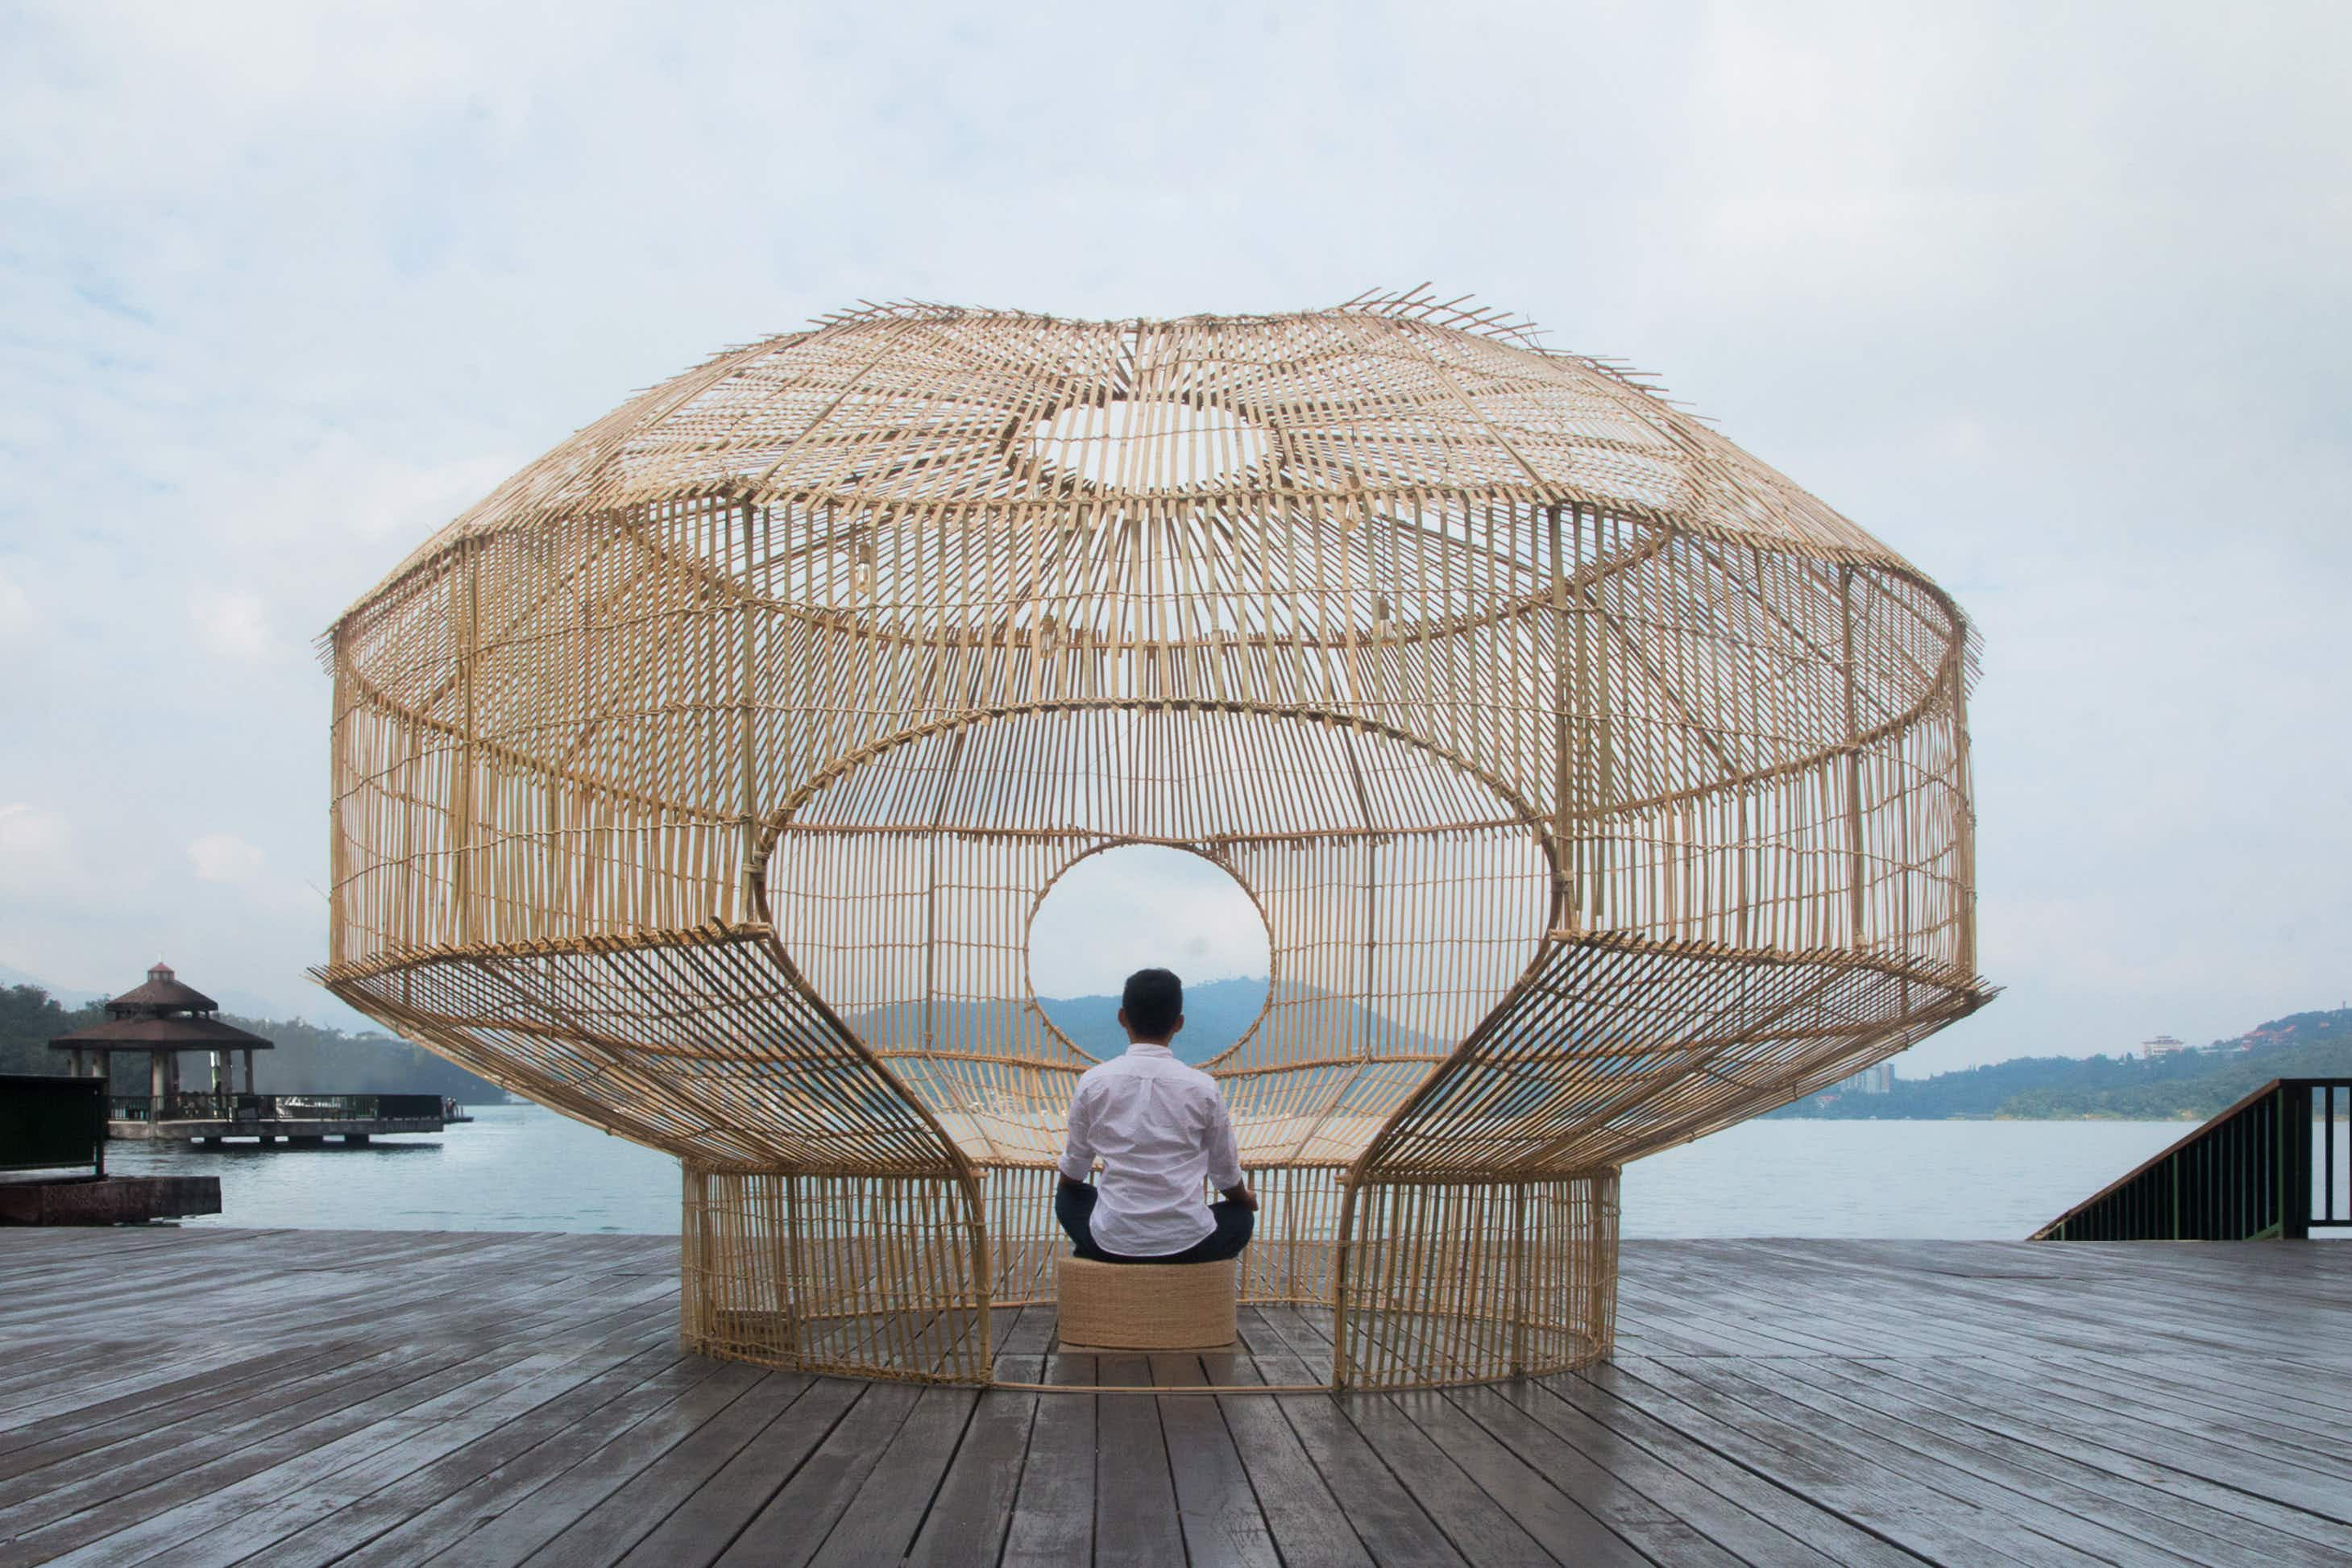 Visit the bamboo house inspired by traditional Taiwanese fishing traps